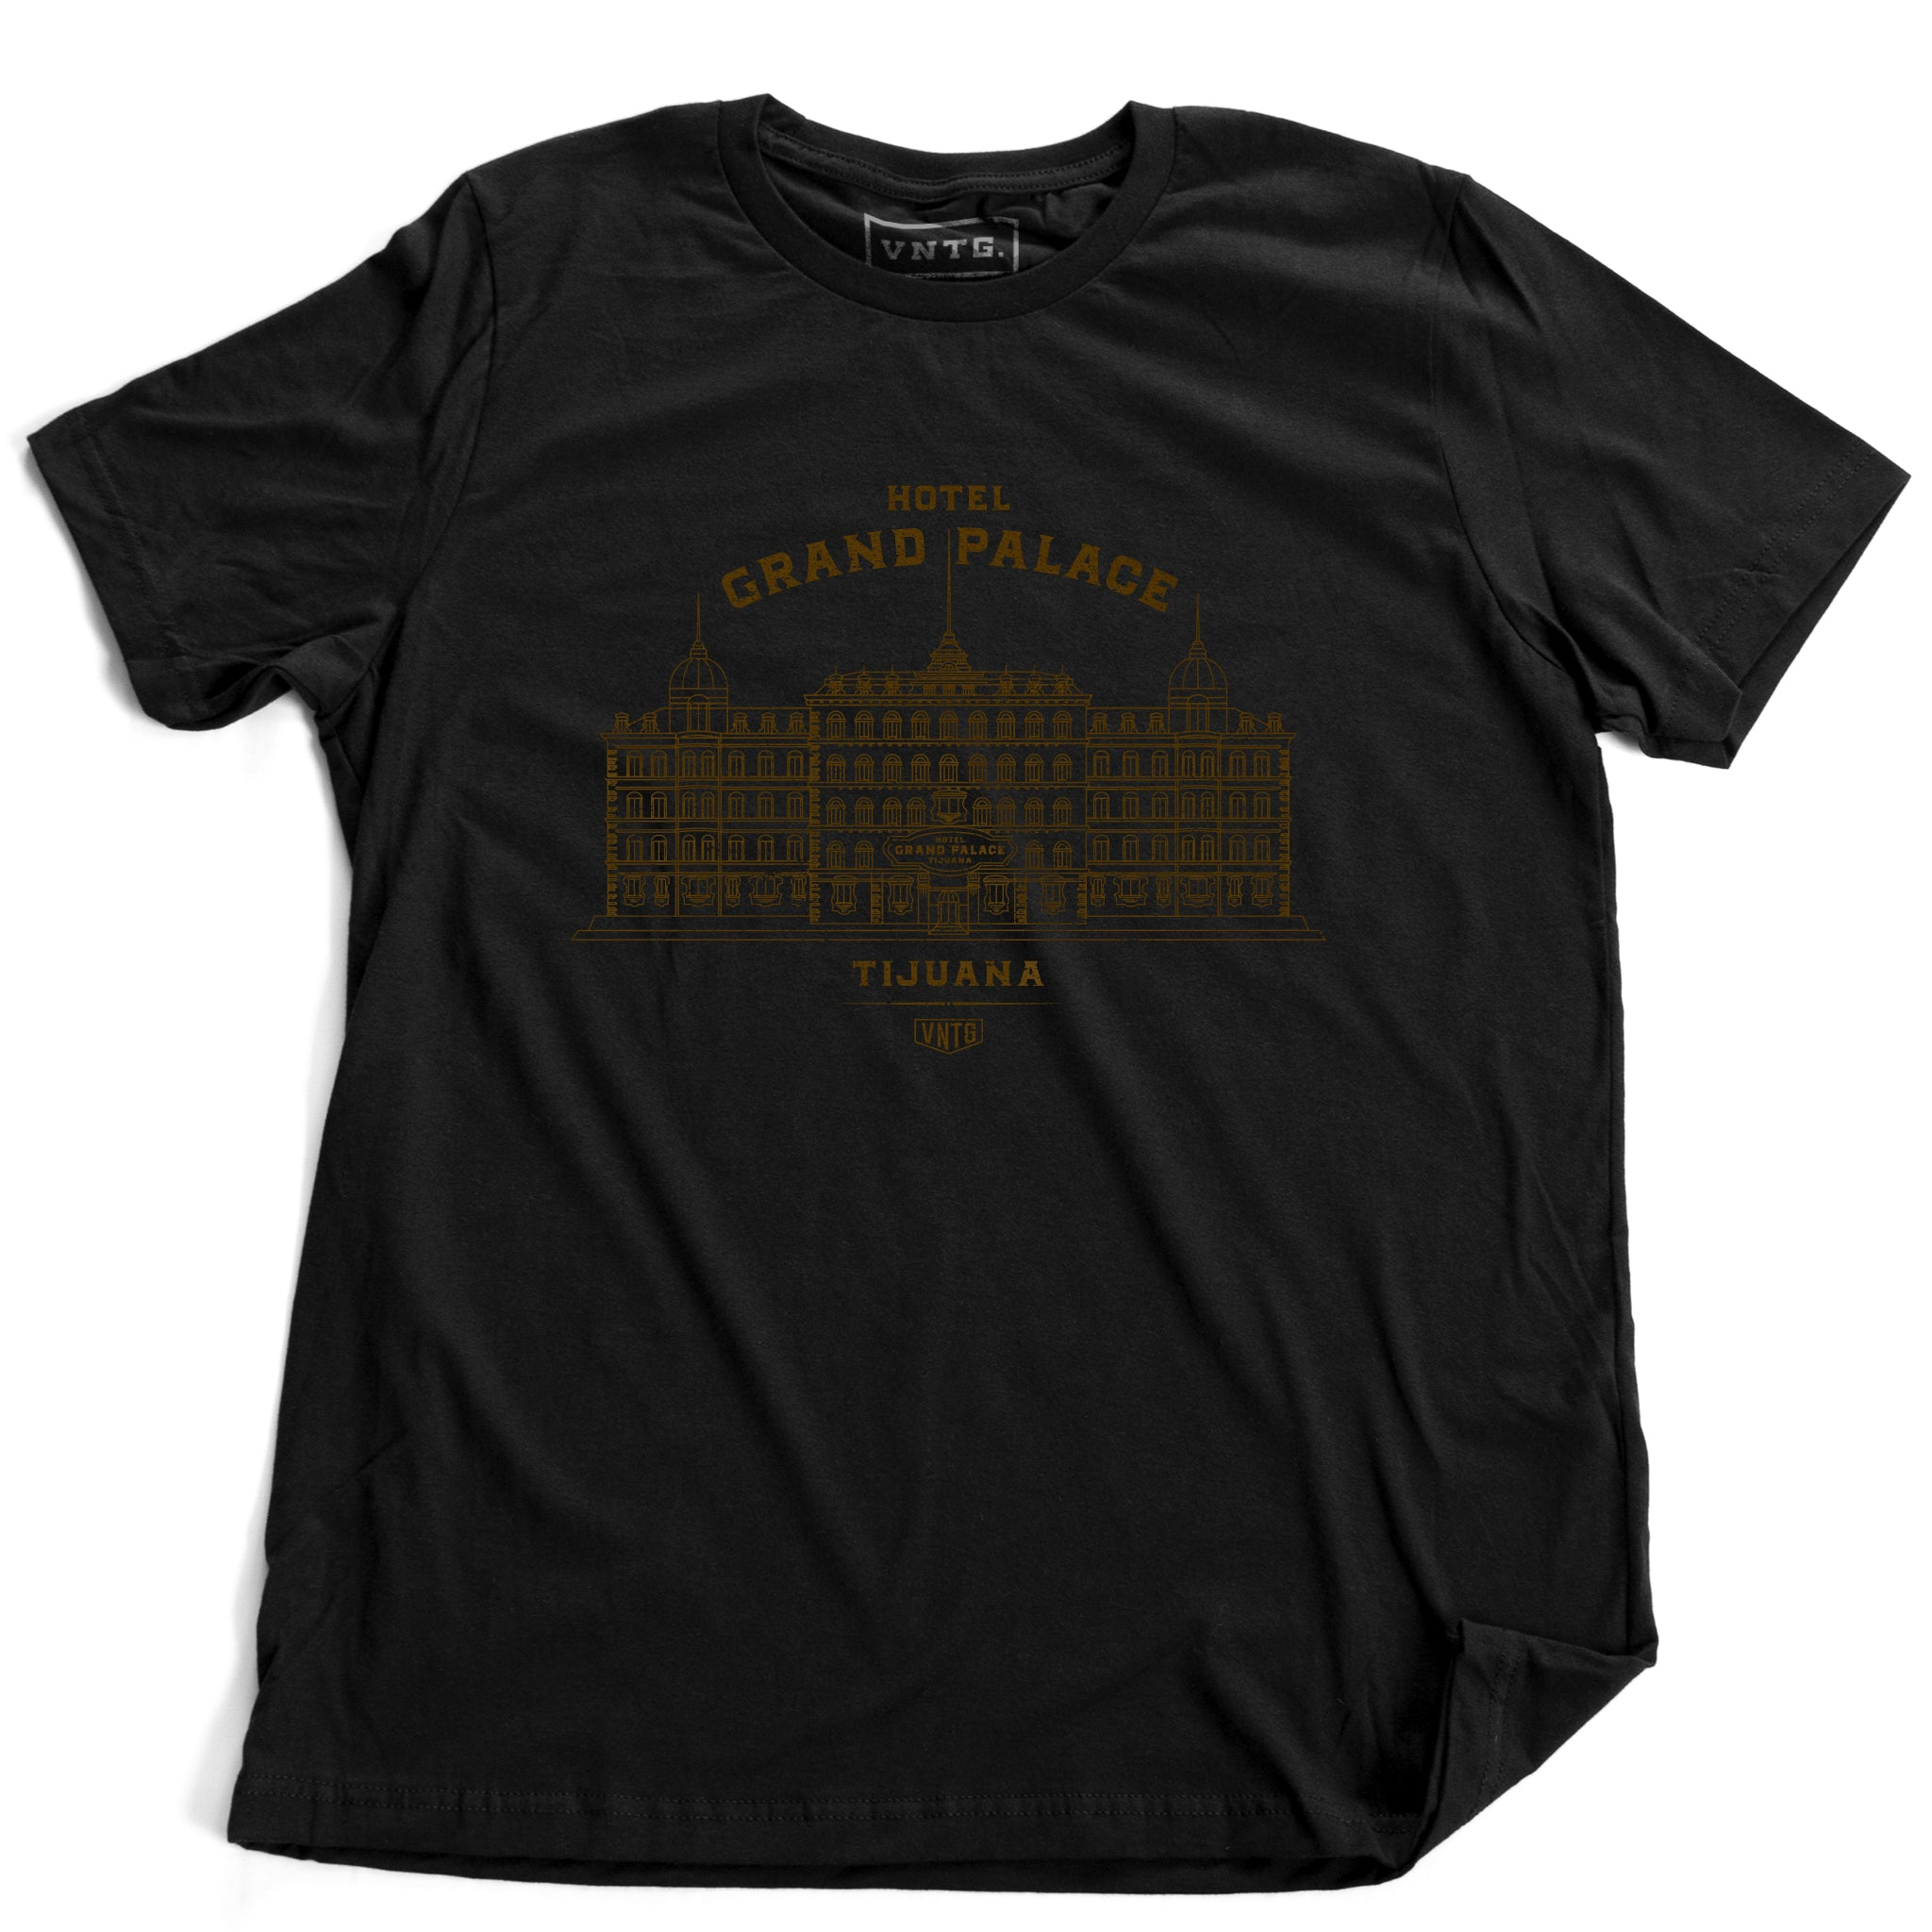 A vintage-inspired retro t-shirt in black, promoting a fictional, sarcastic grand hotel in Tijuana, Mexico. From fashion brand VNTG, from wolfsaint.net The shirt depicts an elegant old hotel in an intricate line drawing. Inspired by the films of Wes Anderson, including The Grand Budapest Hotel.